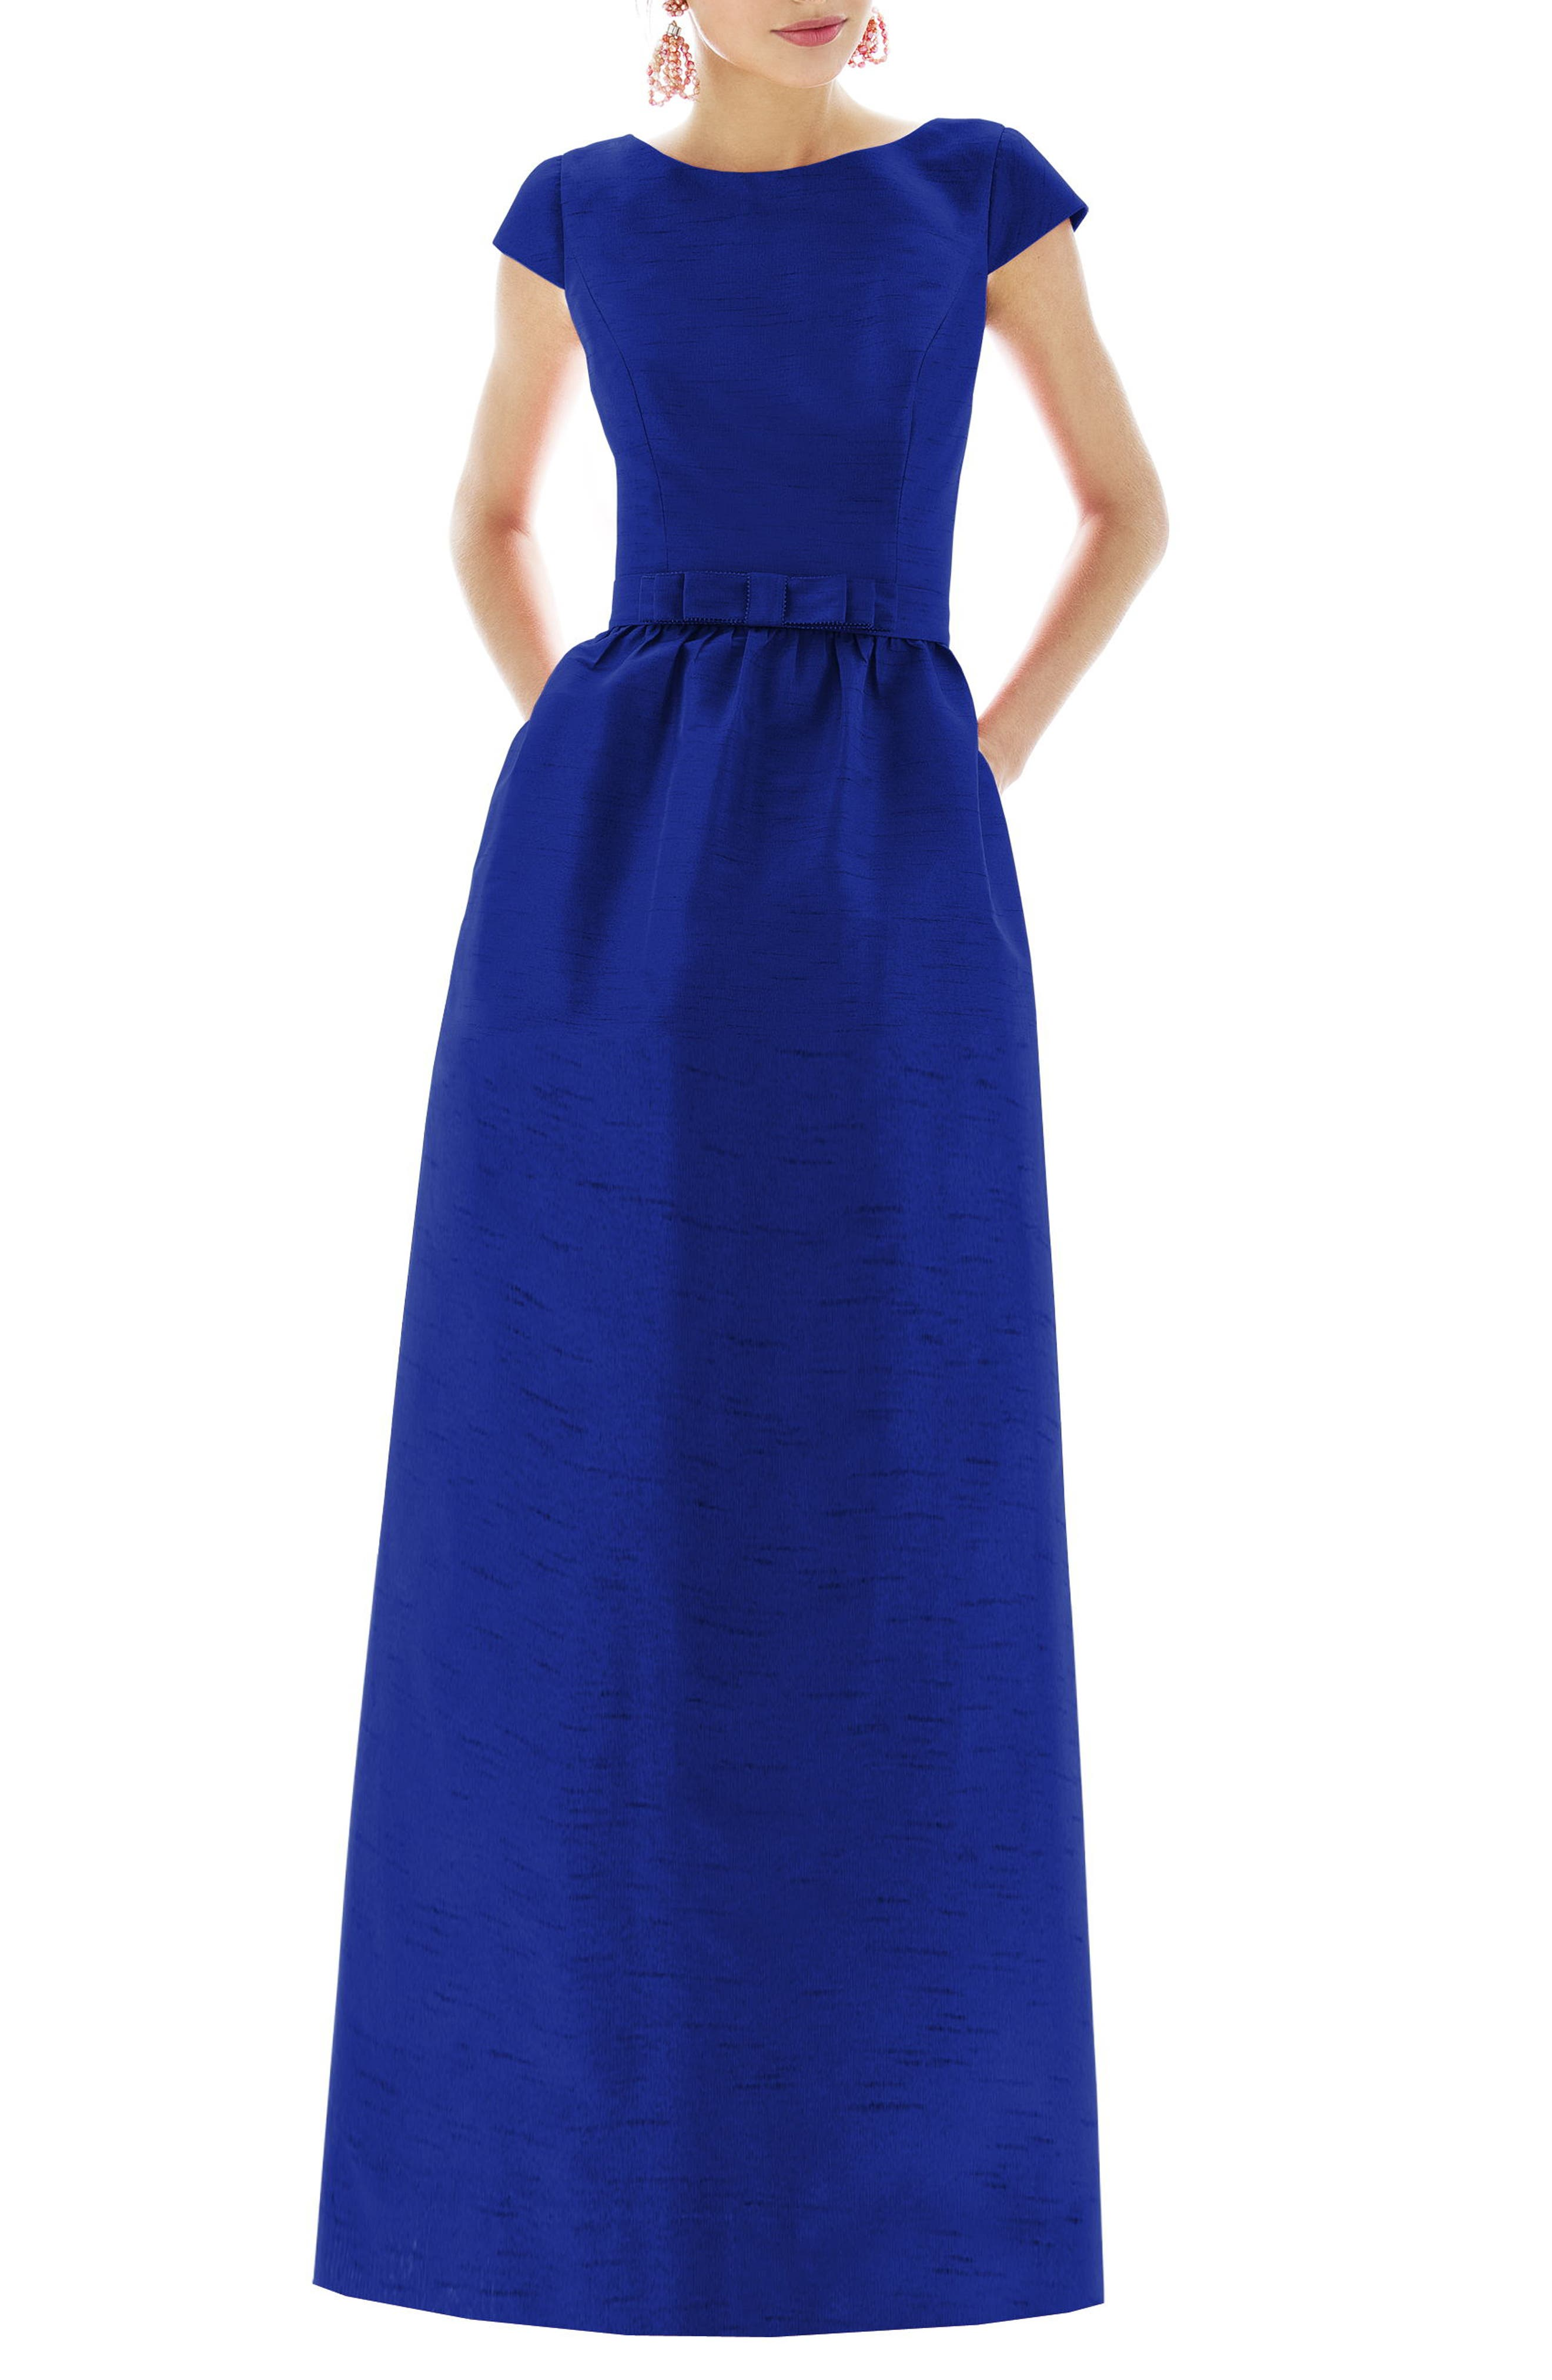 1960s Evening Dresses, Bridesmaids, Mothers Gowns Womens Alfred Sung Cap Sleeve Dupioni Full Length Dress Size 12 - Blue $242.00 AT vintagedancer.com